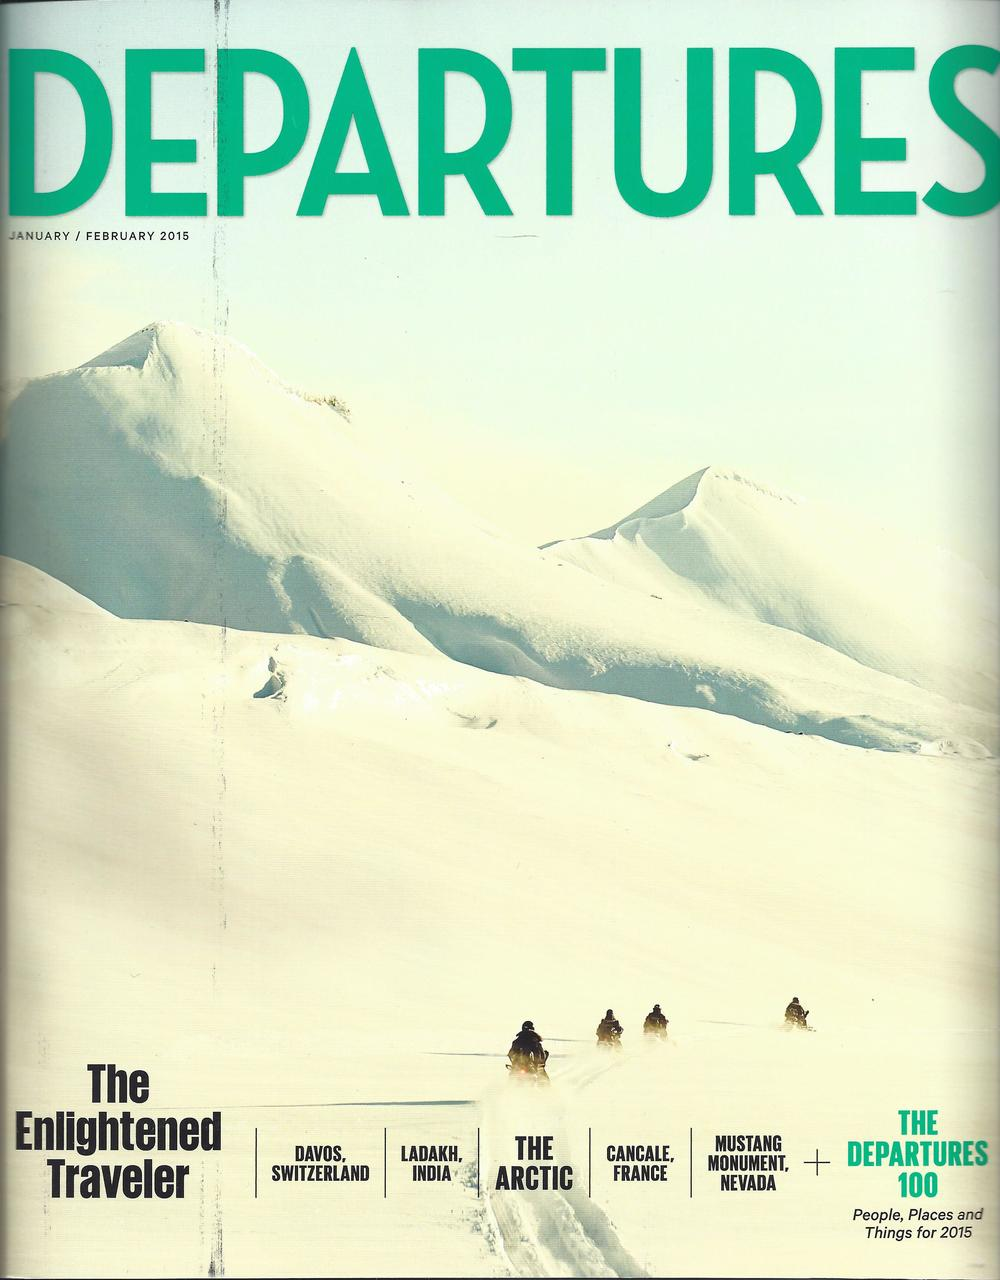 Departures Jan.Feb 2015 Features Patrick Mele_Page_1.jpg